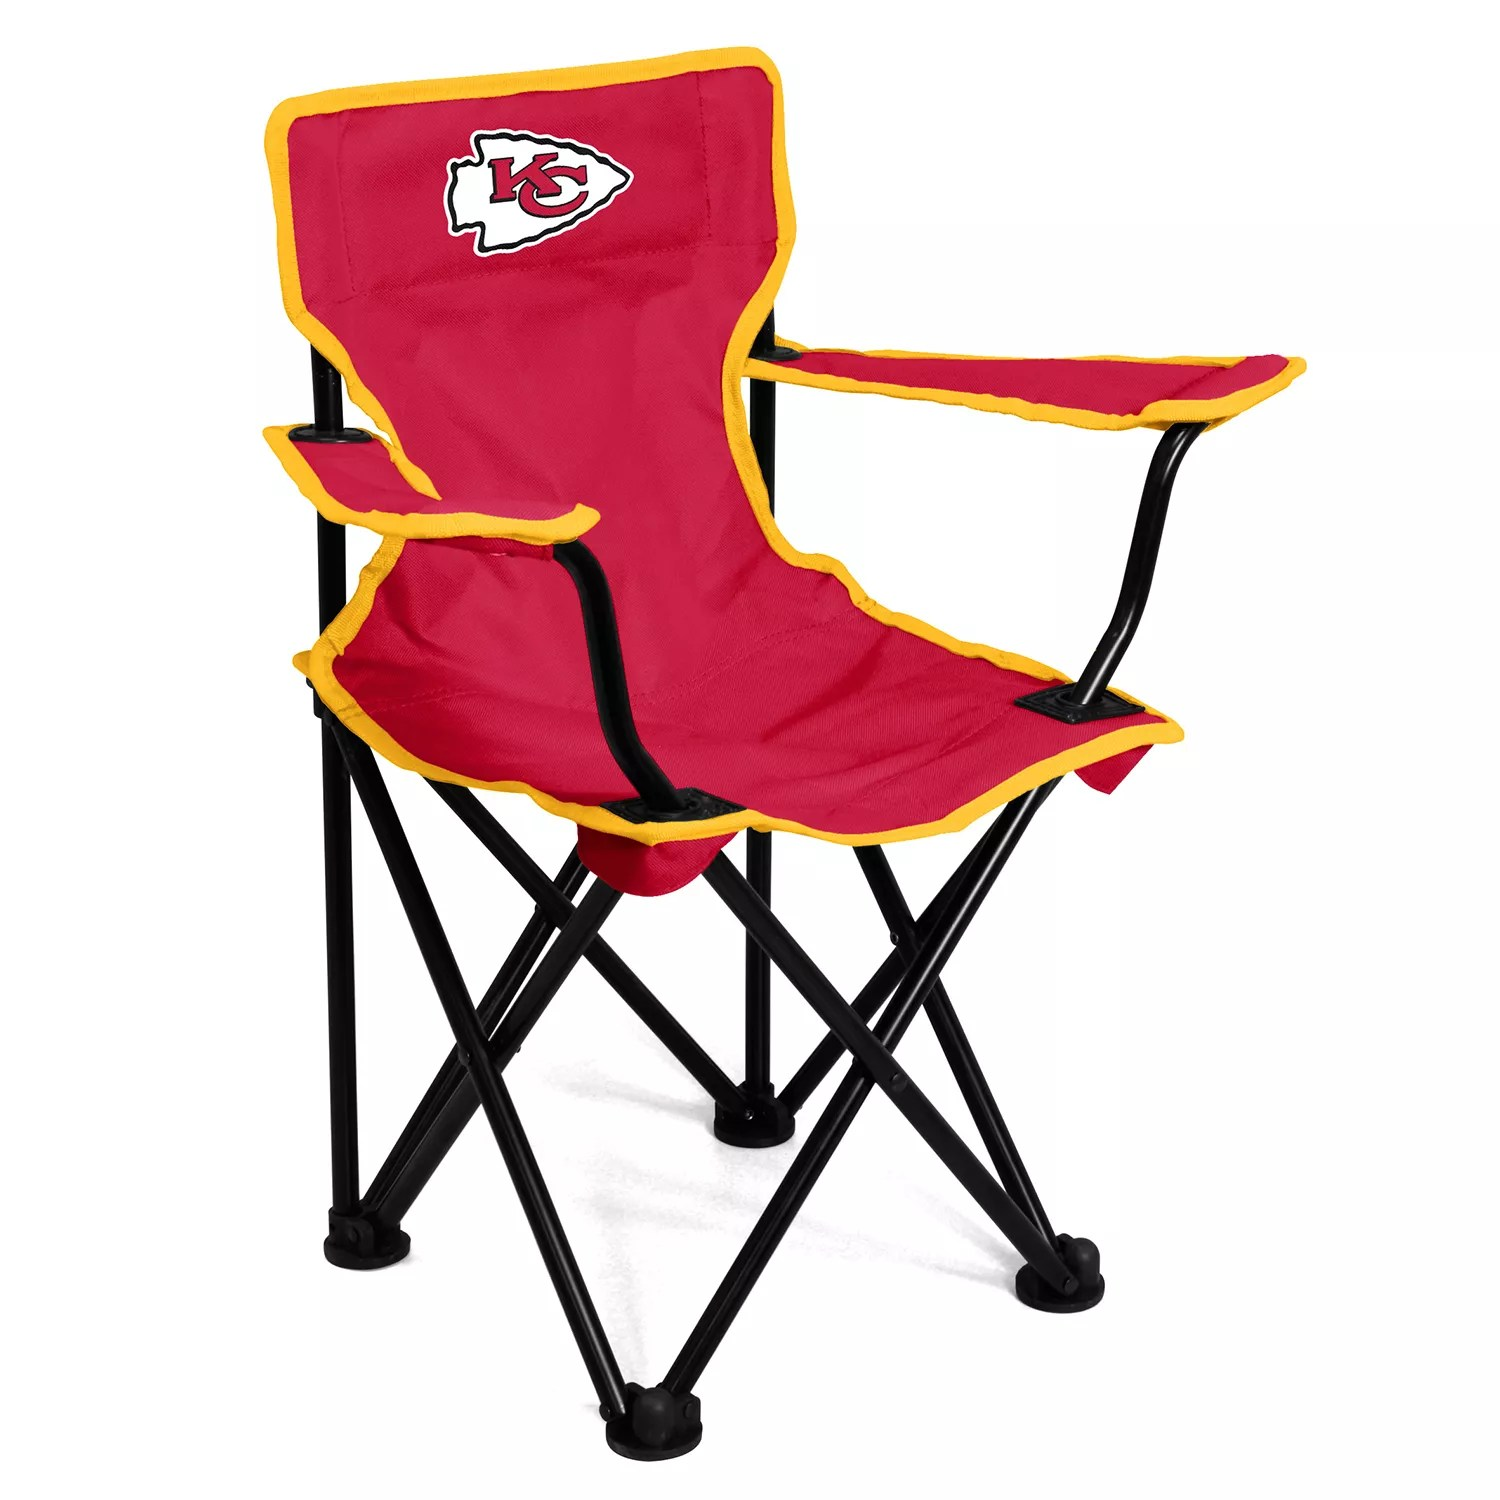 portable folding chairs what are wwe made out of logo brands kansas city chiefs toddler chair